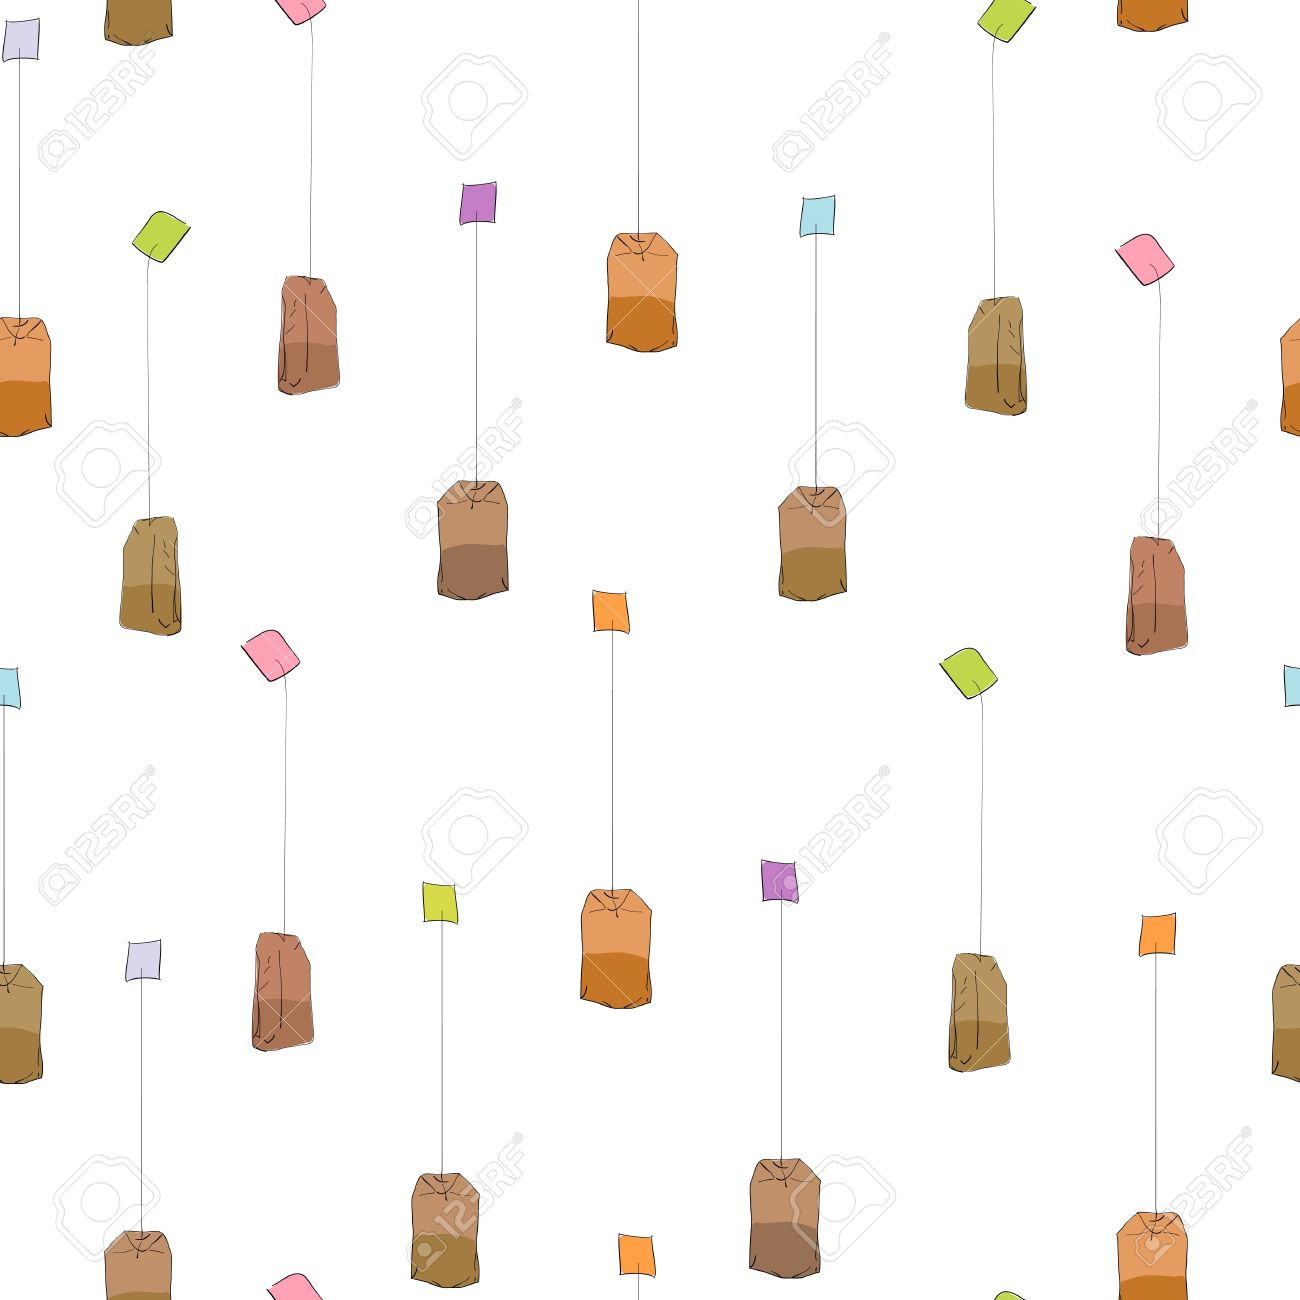 Simple Tea Bags Pattern Over Transparent Background Royalty Free.